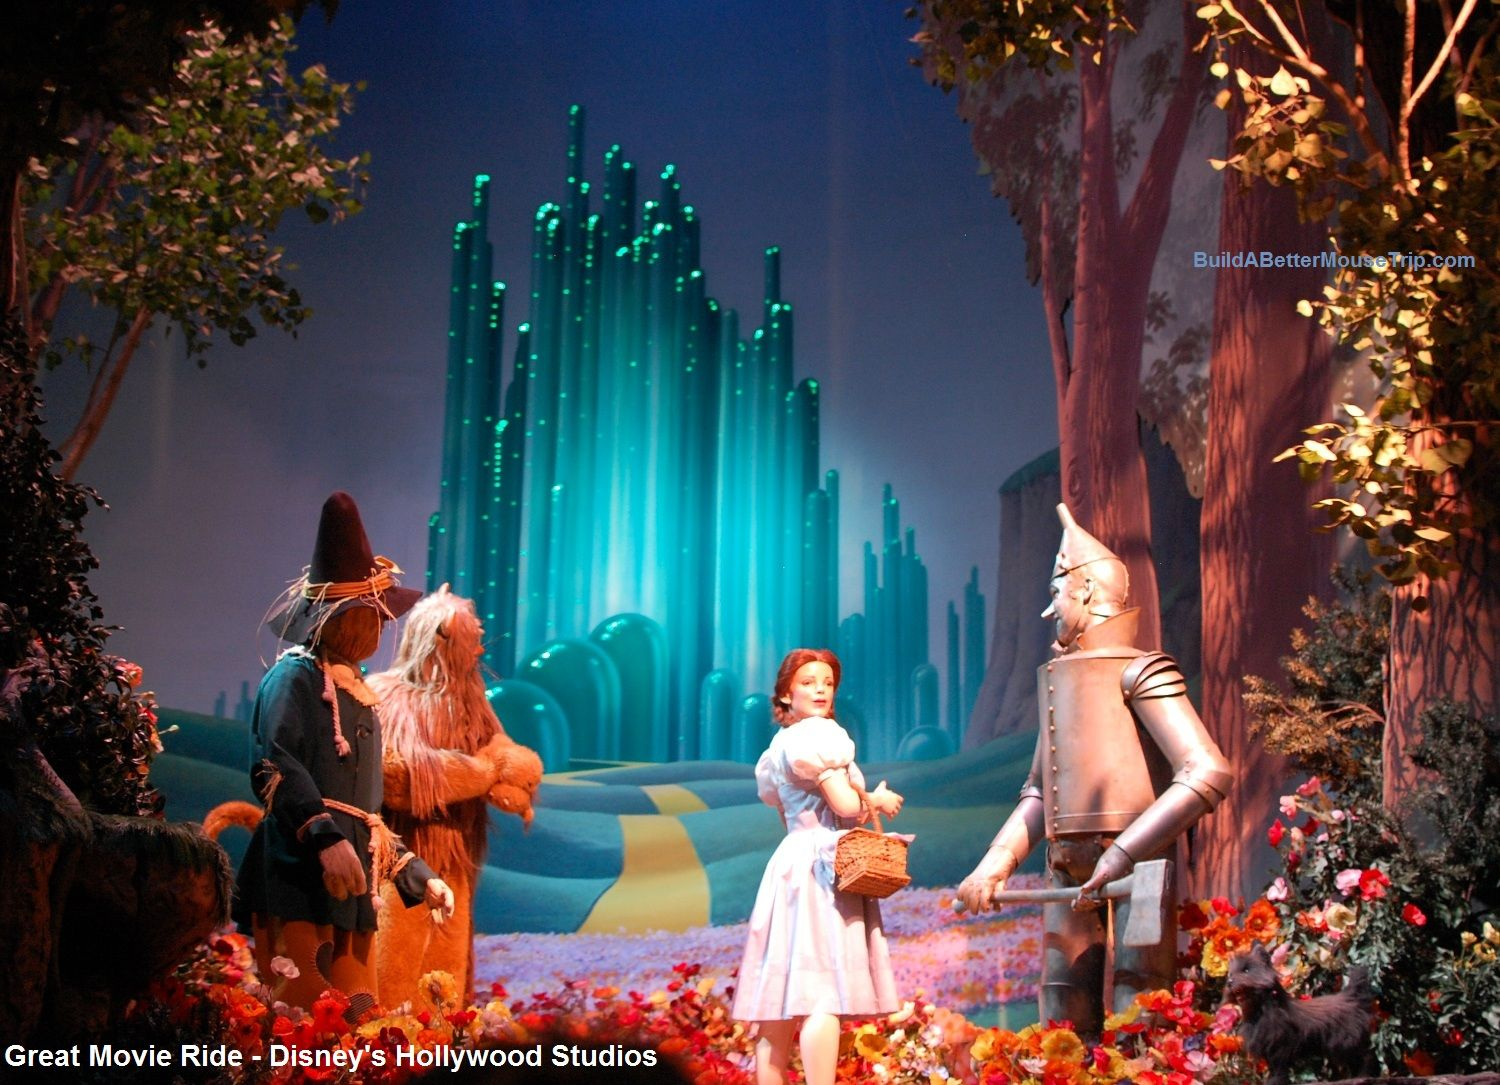 Wizard of Oz scene from the Great Movie Ride at Disney's